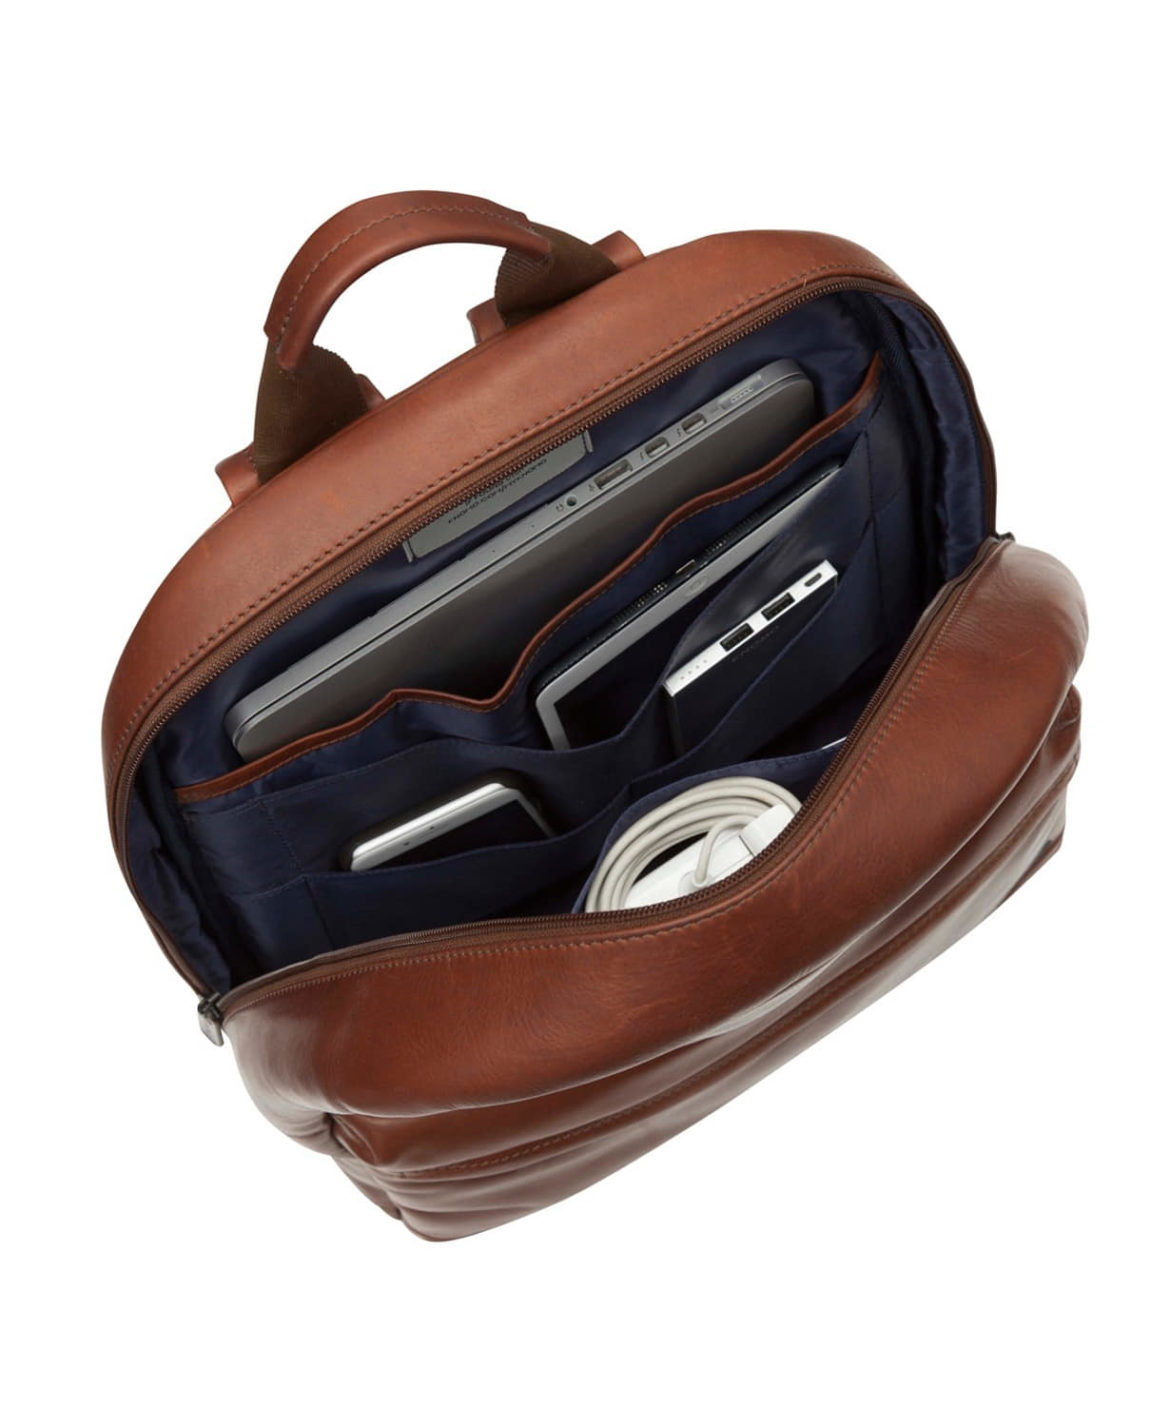 Knomo London Leather Laptop Bag as seen in this image carrying a tablet, charging cable, smartphone, and computer.